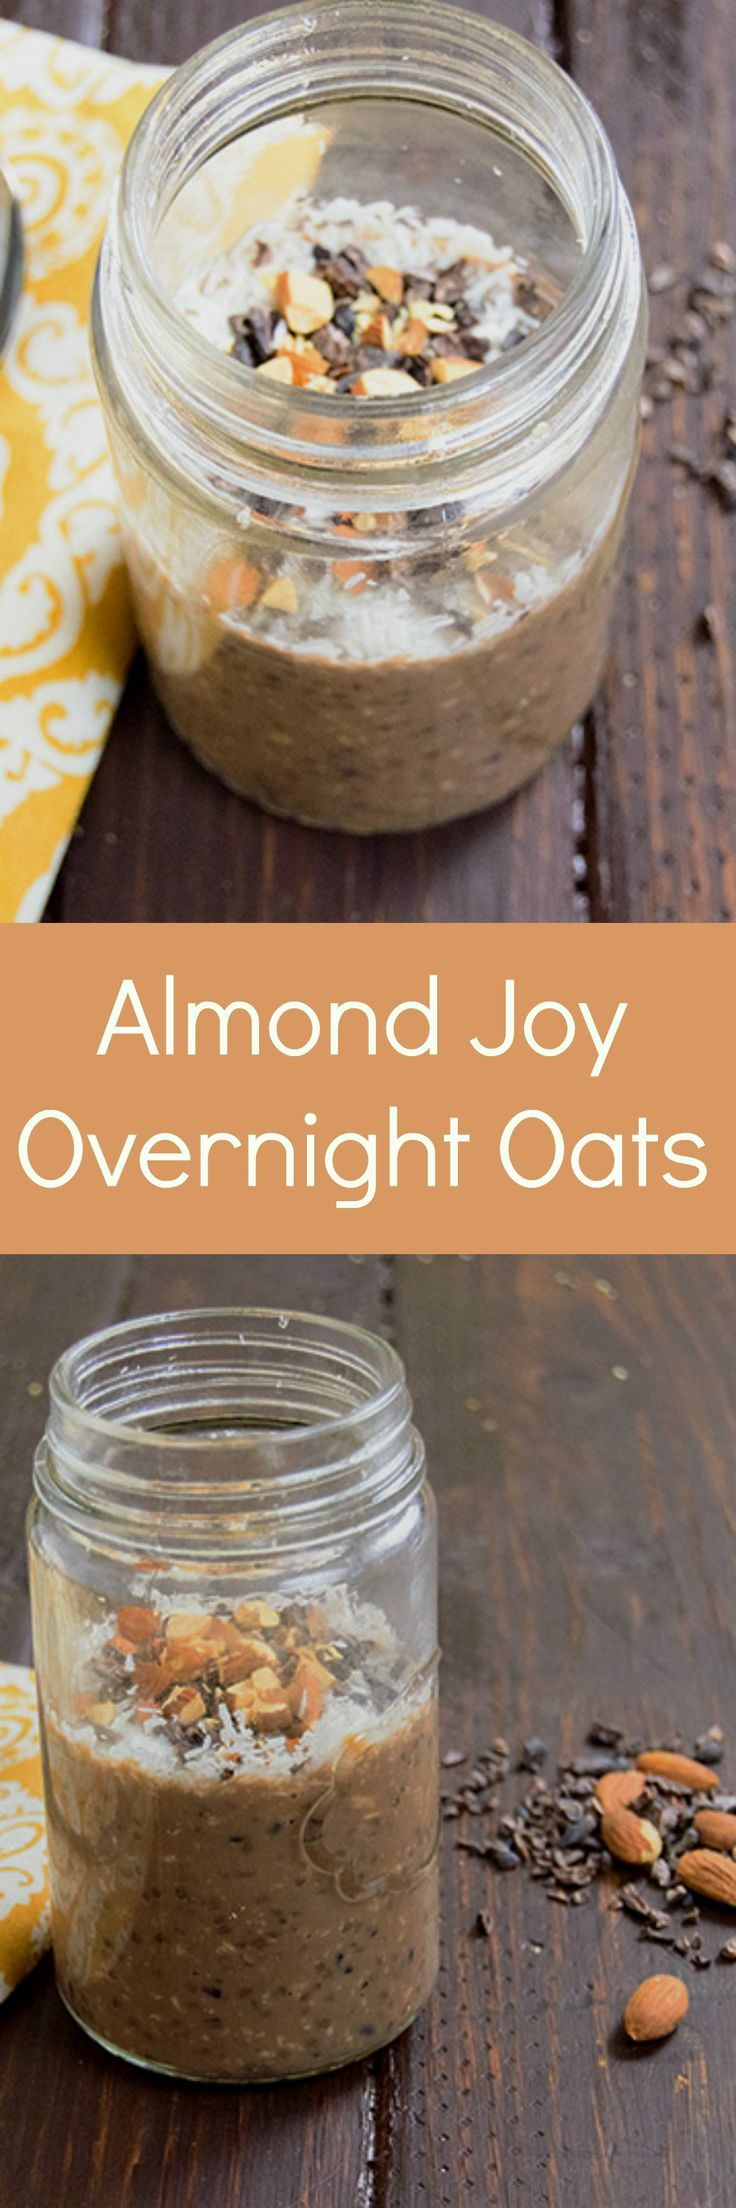 Almond Joy Overnight Oats - you will love staring your day with this easy no cook oatmeal! Packed with protein, gluten free and low fat! This taste just like an almond joy!